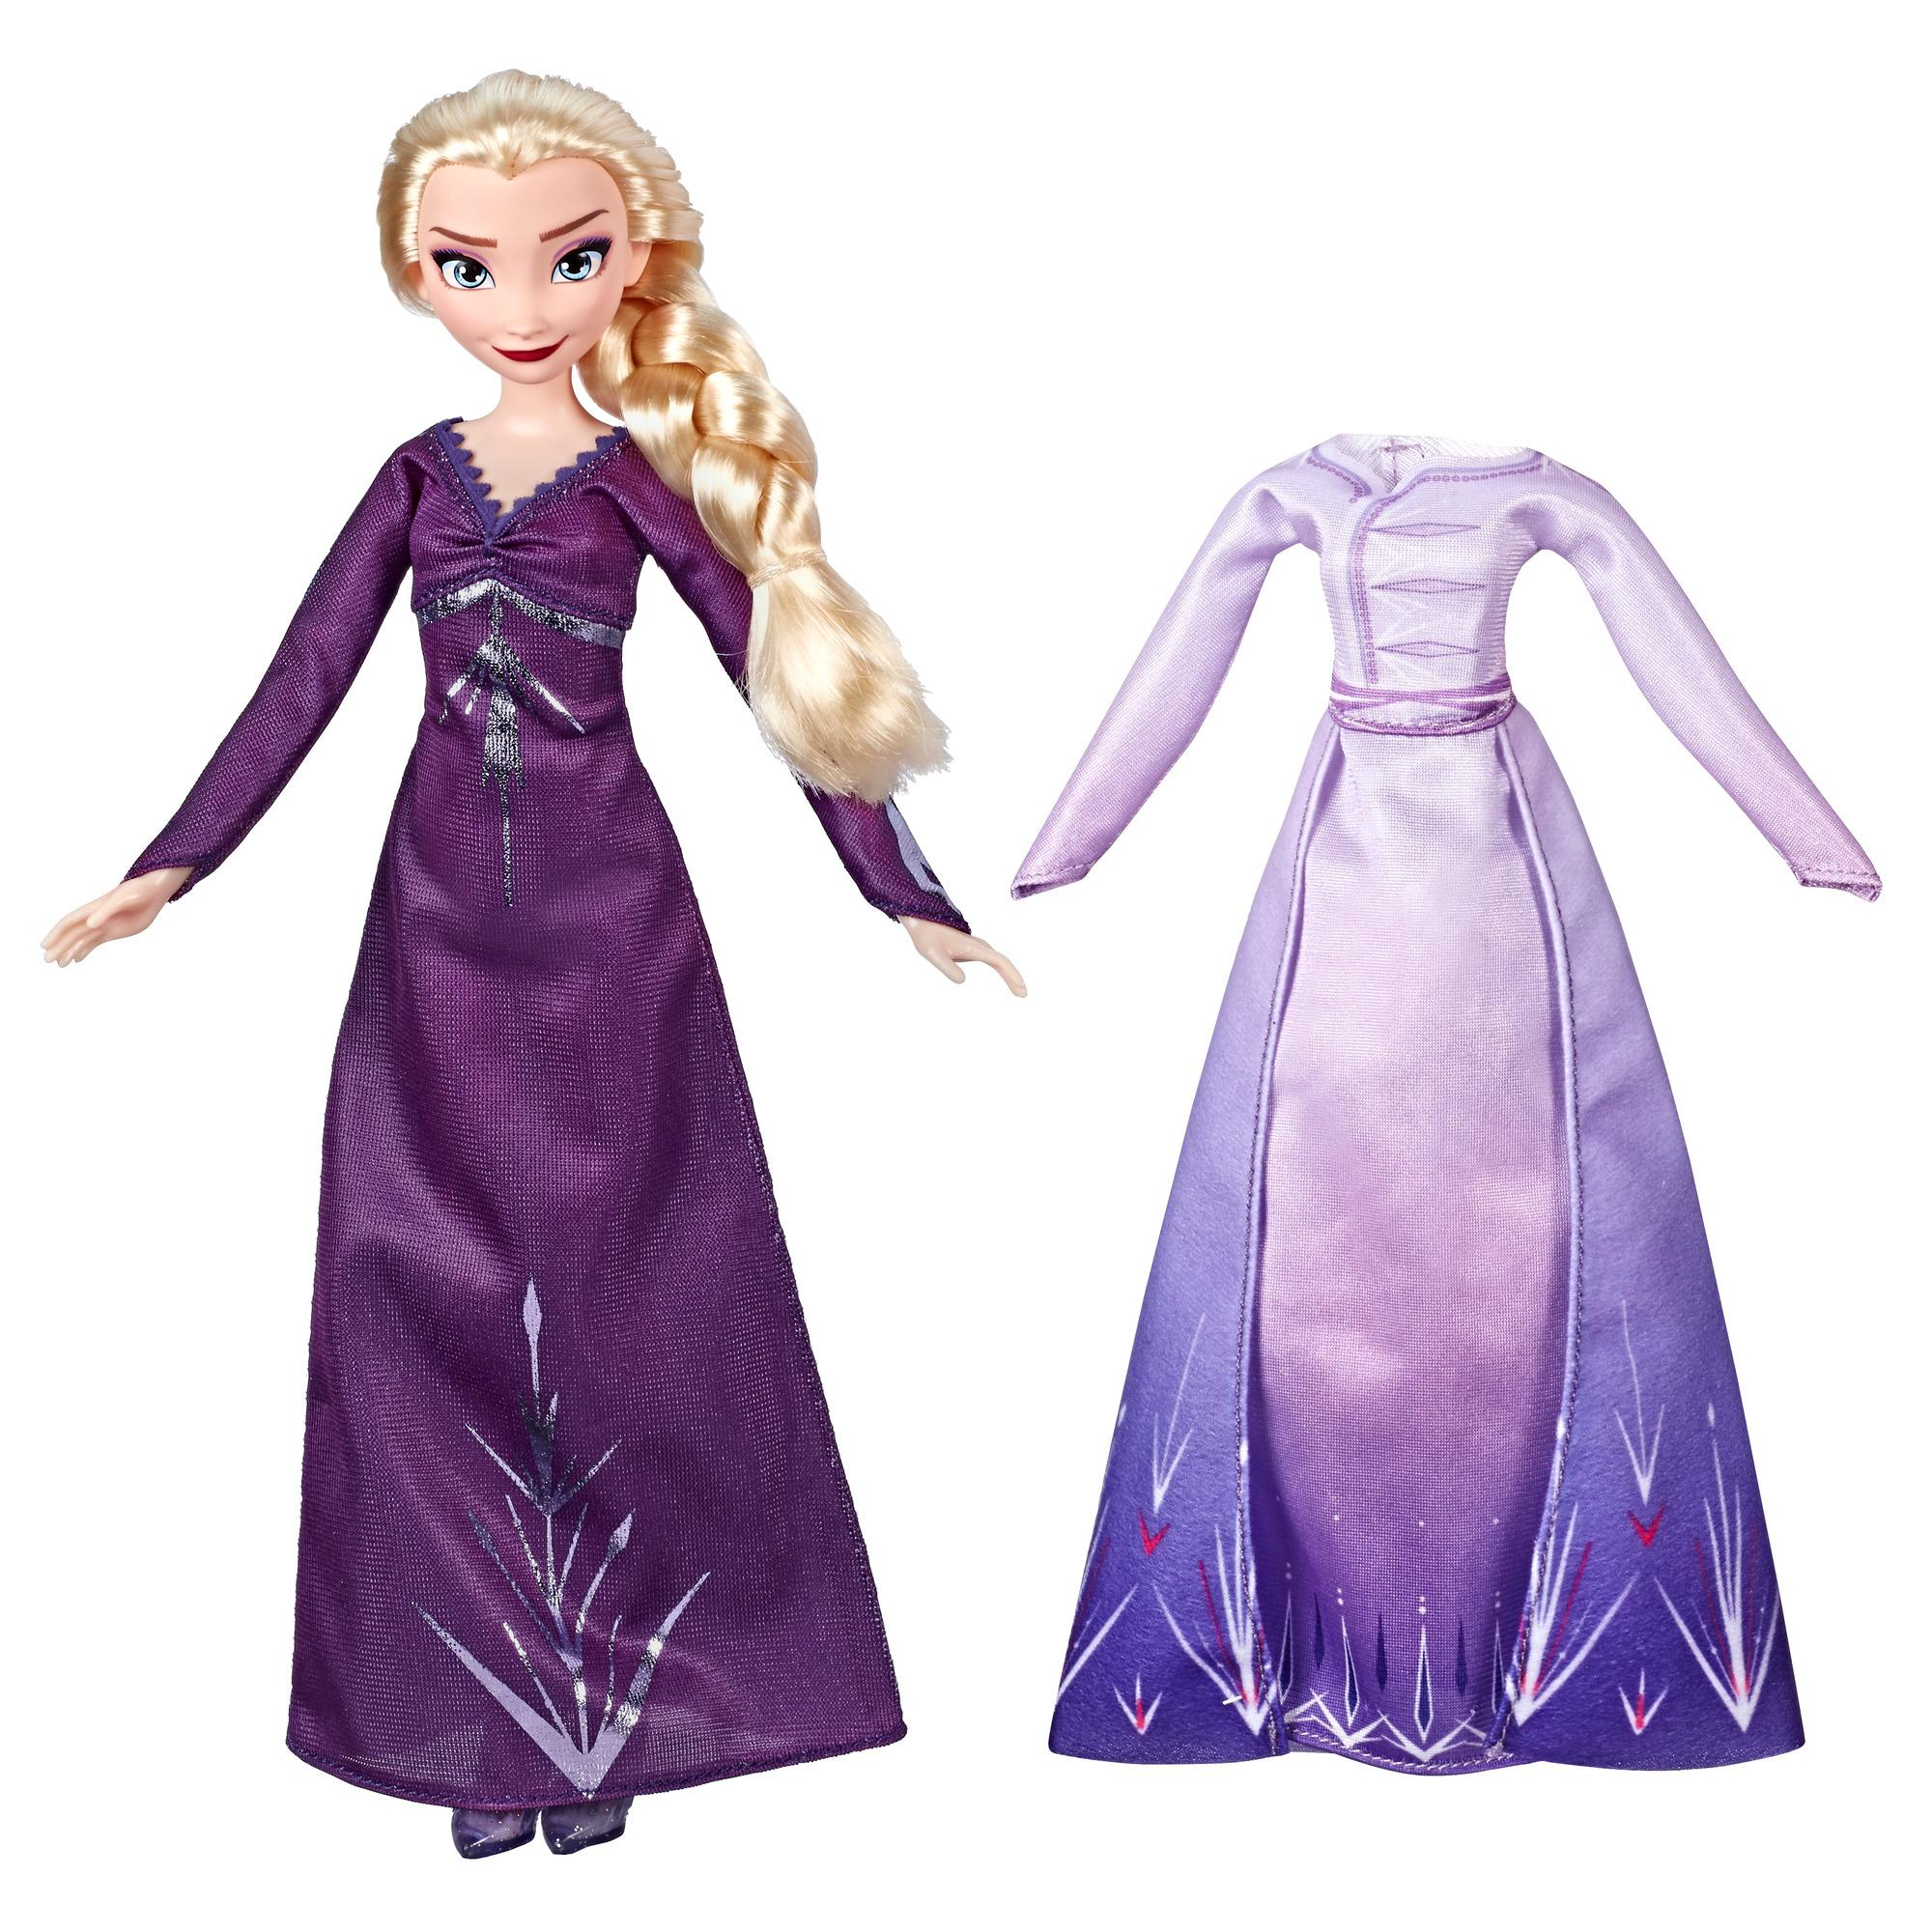 Disney Frozen Arendelle Fashions Elsa Fashion Doll